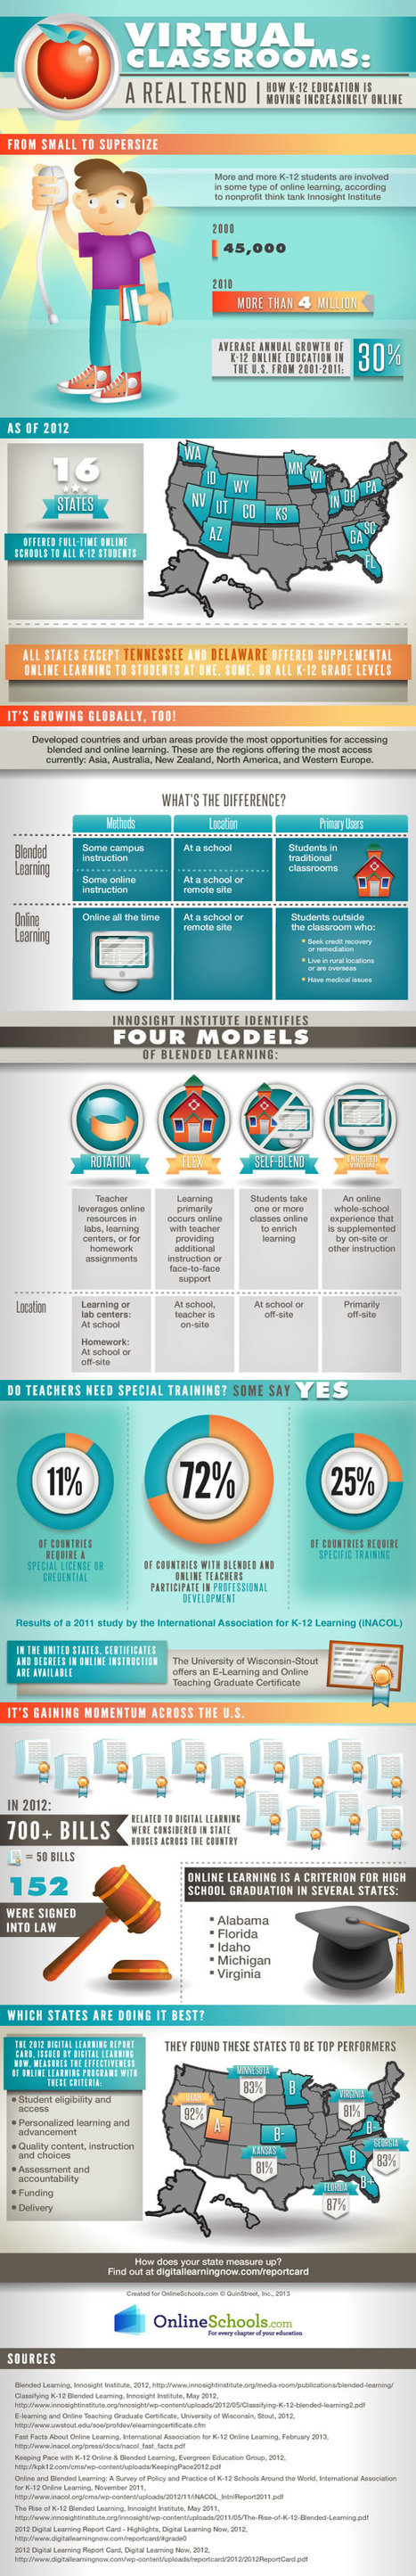 The Teacher's Quick Guide To Blended Learning [Infographic] | Blended Learning | Scoop.it